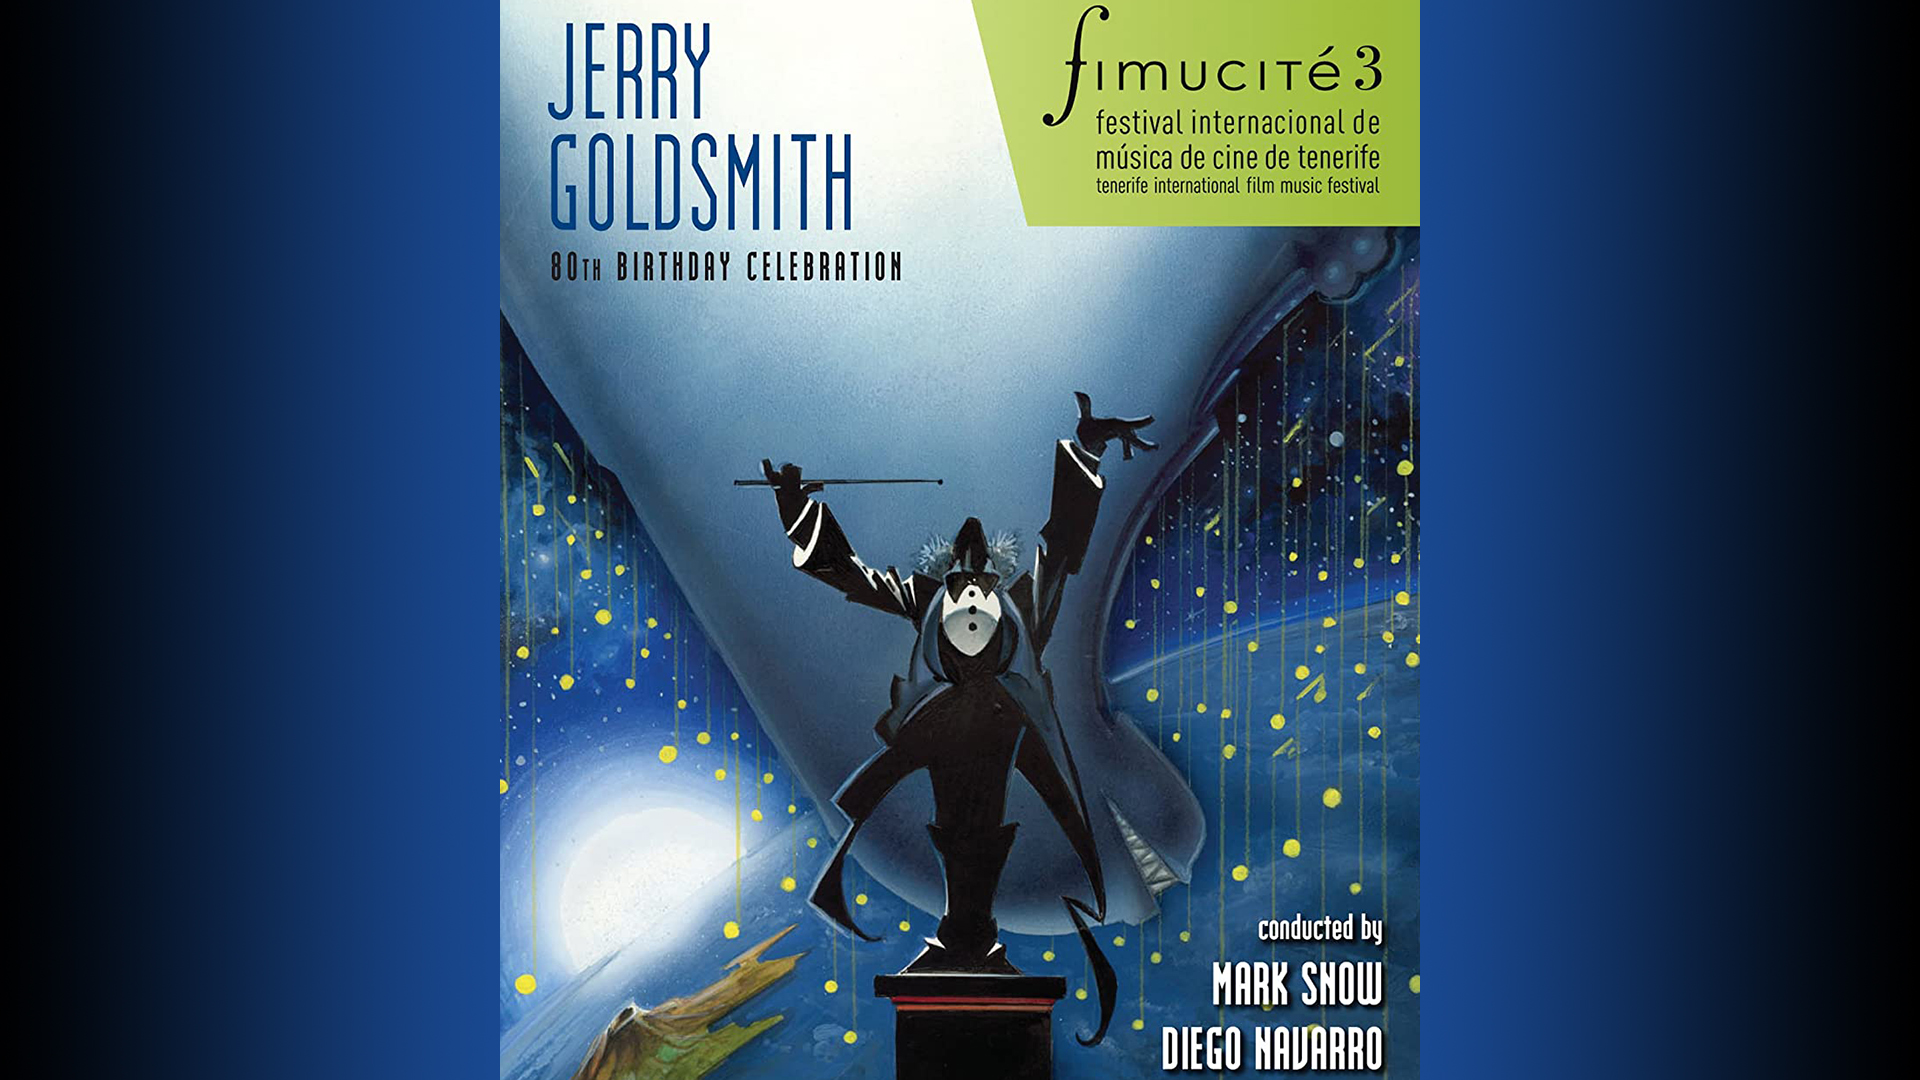 Jerry Goldsmith: Fimucité 80th Birthday Celebration